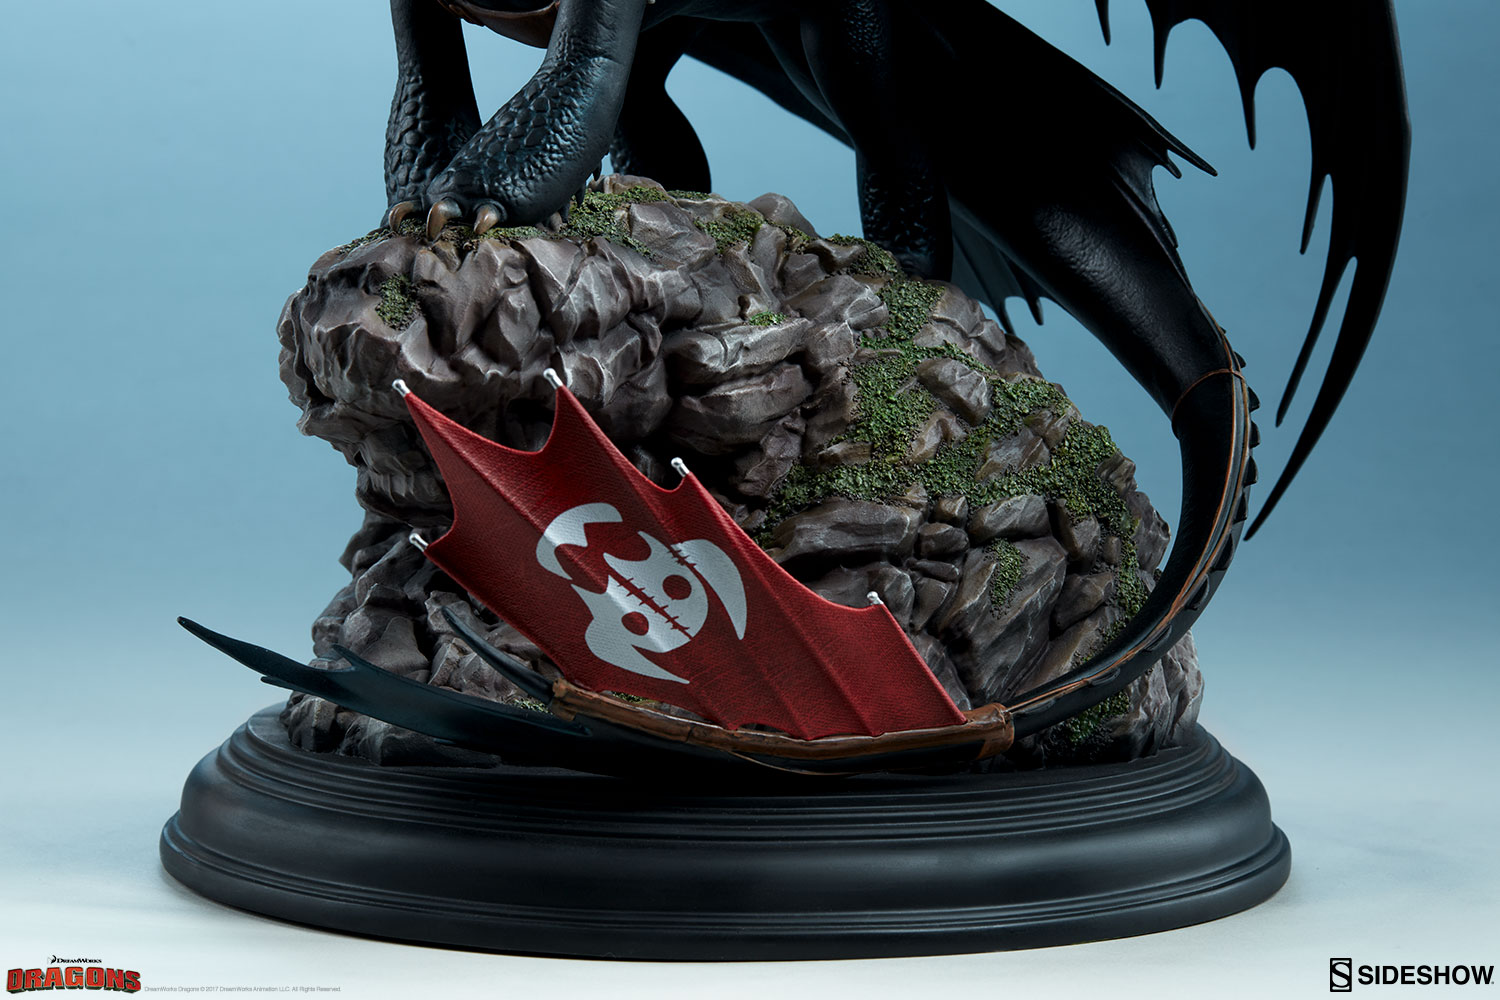 Giant Dragon Statue How To Train Your Dragon Toothless Statue By Sideshow